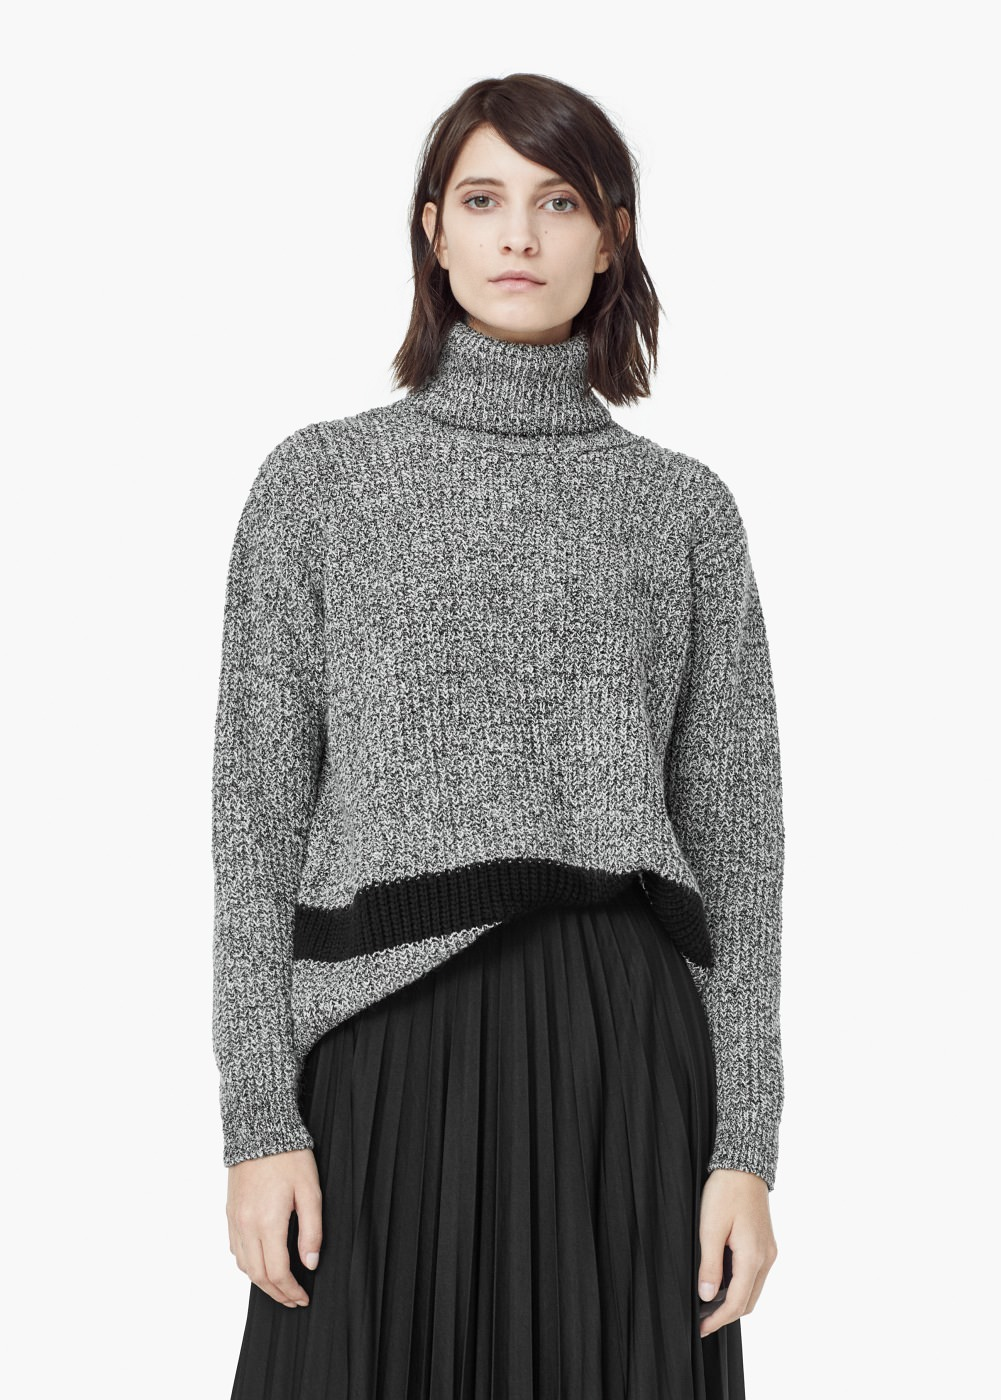 Flecked Cotton Blend Sweater €29.95  REF. 53007659